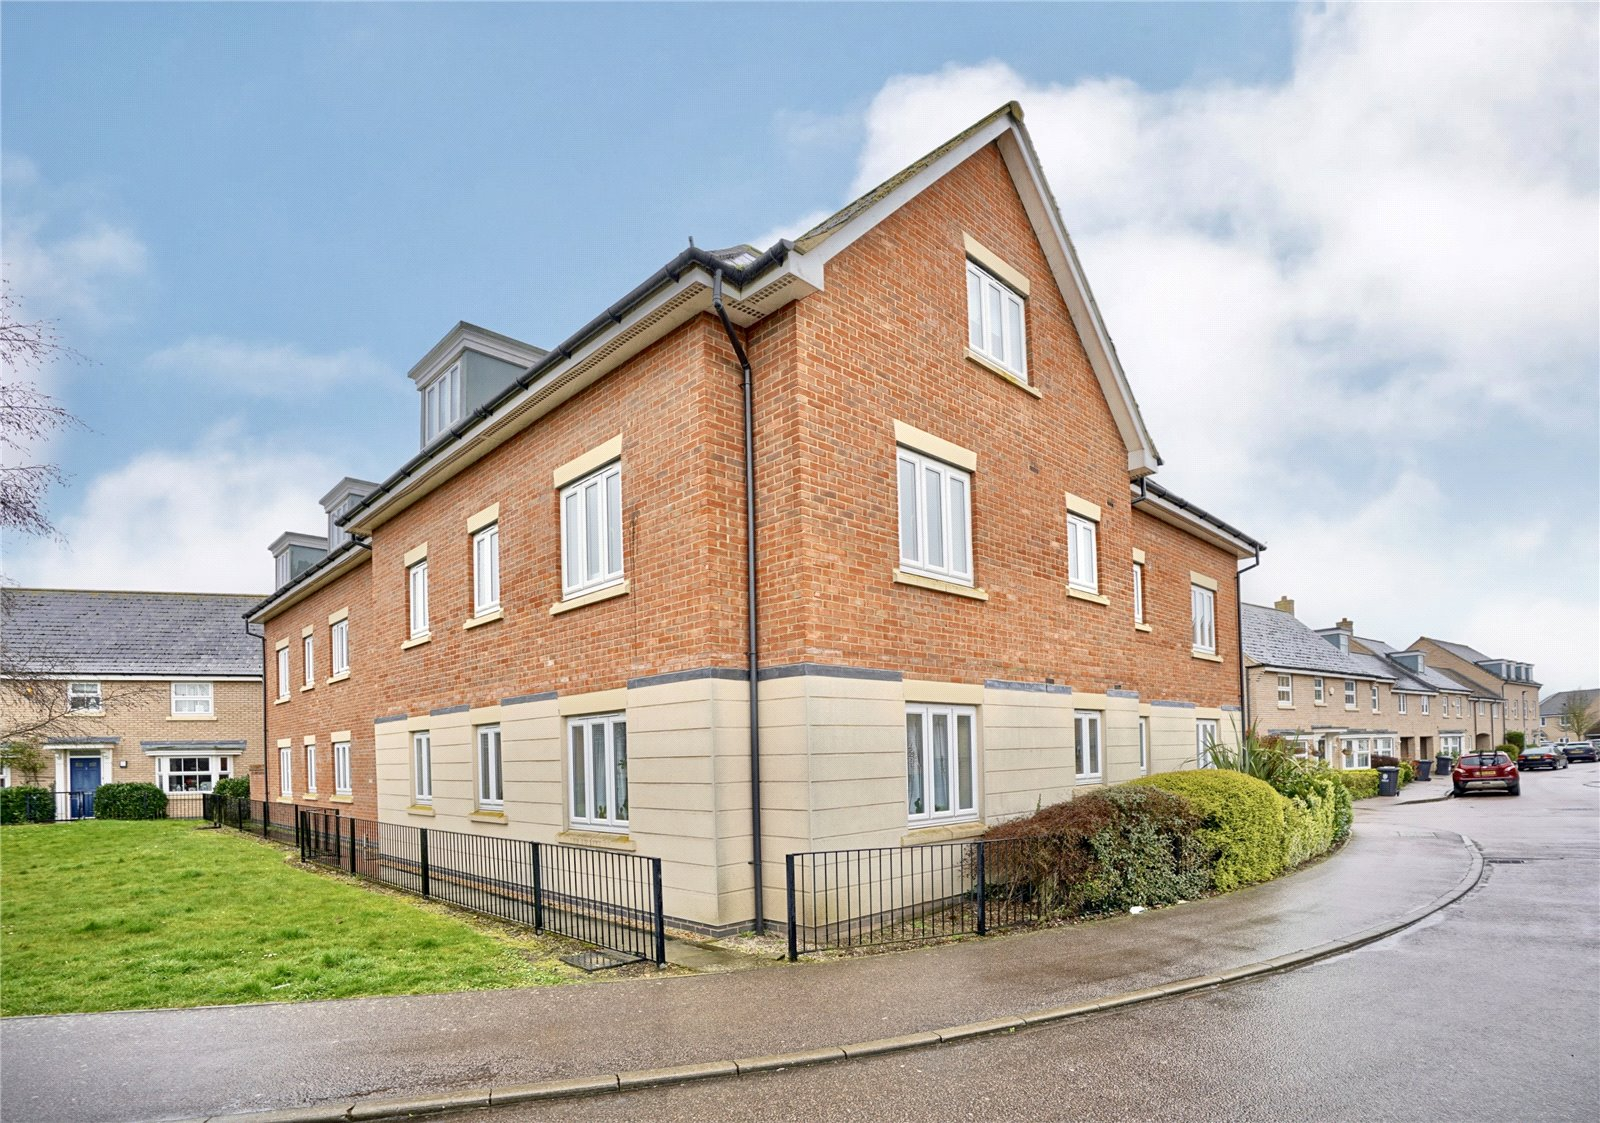 2 bed apartment for sale in Willingham, CB24 5GX, CB24